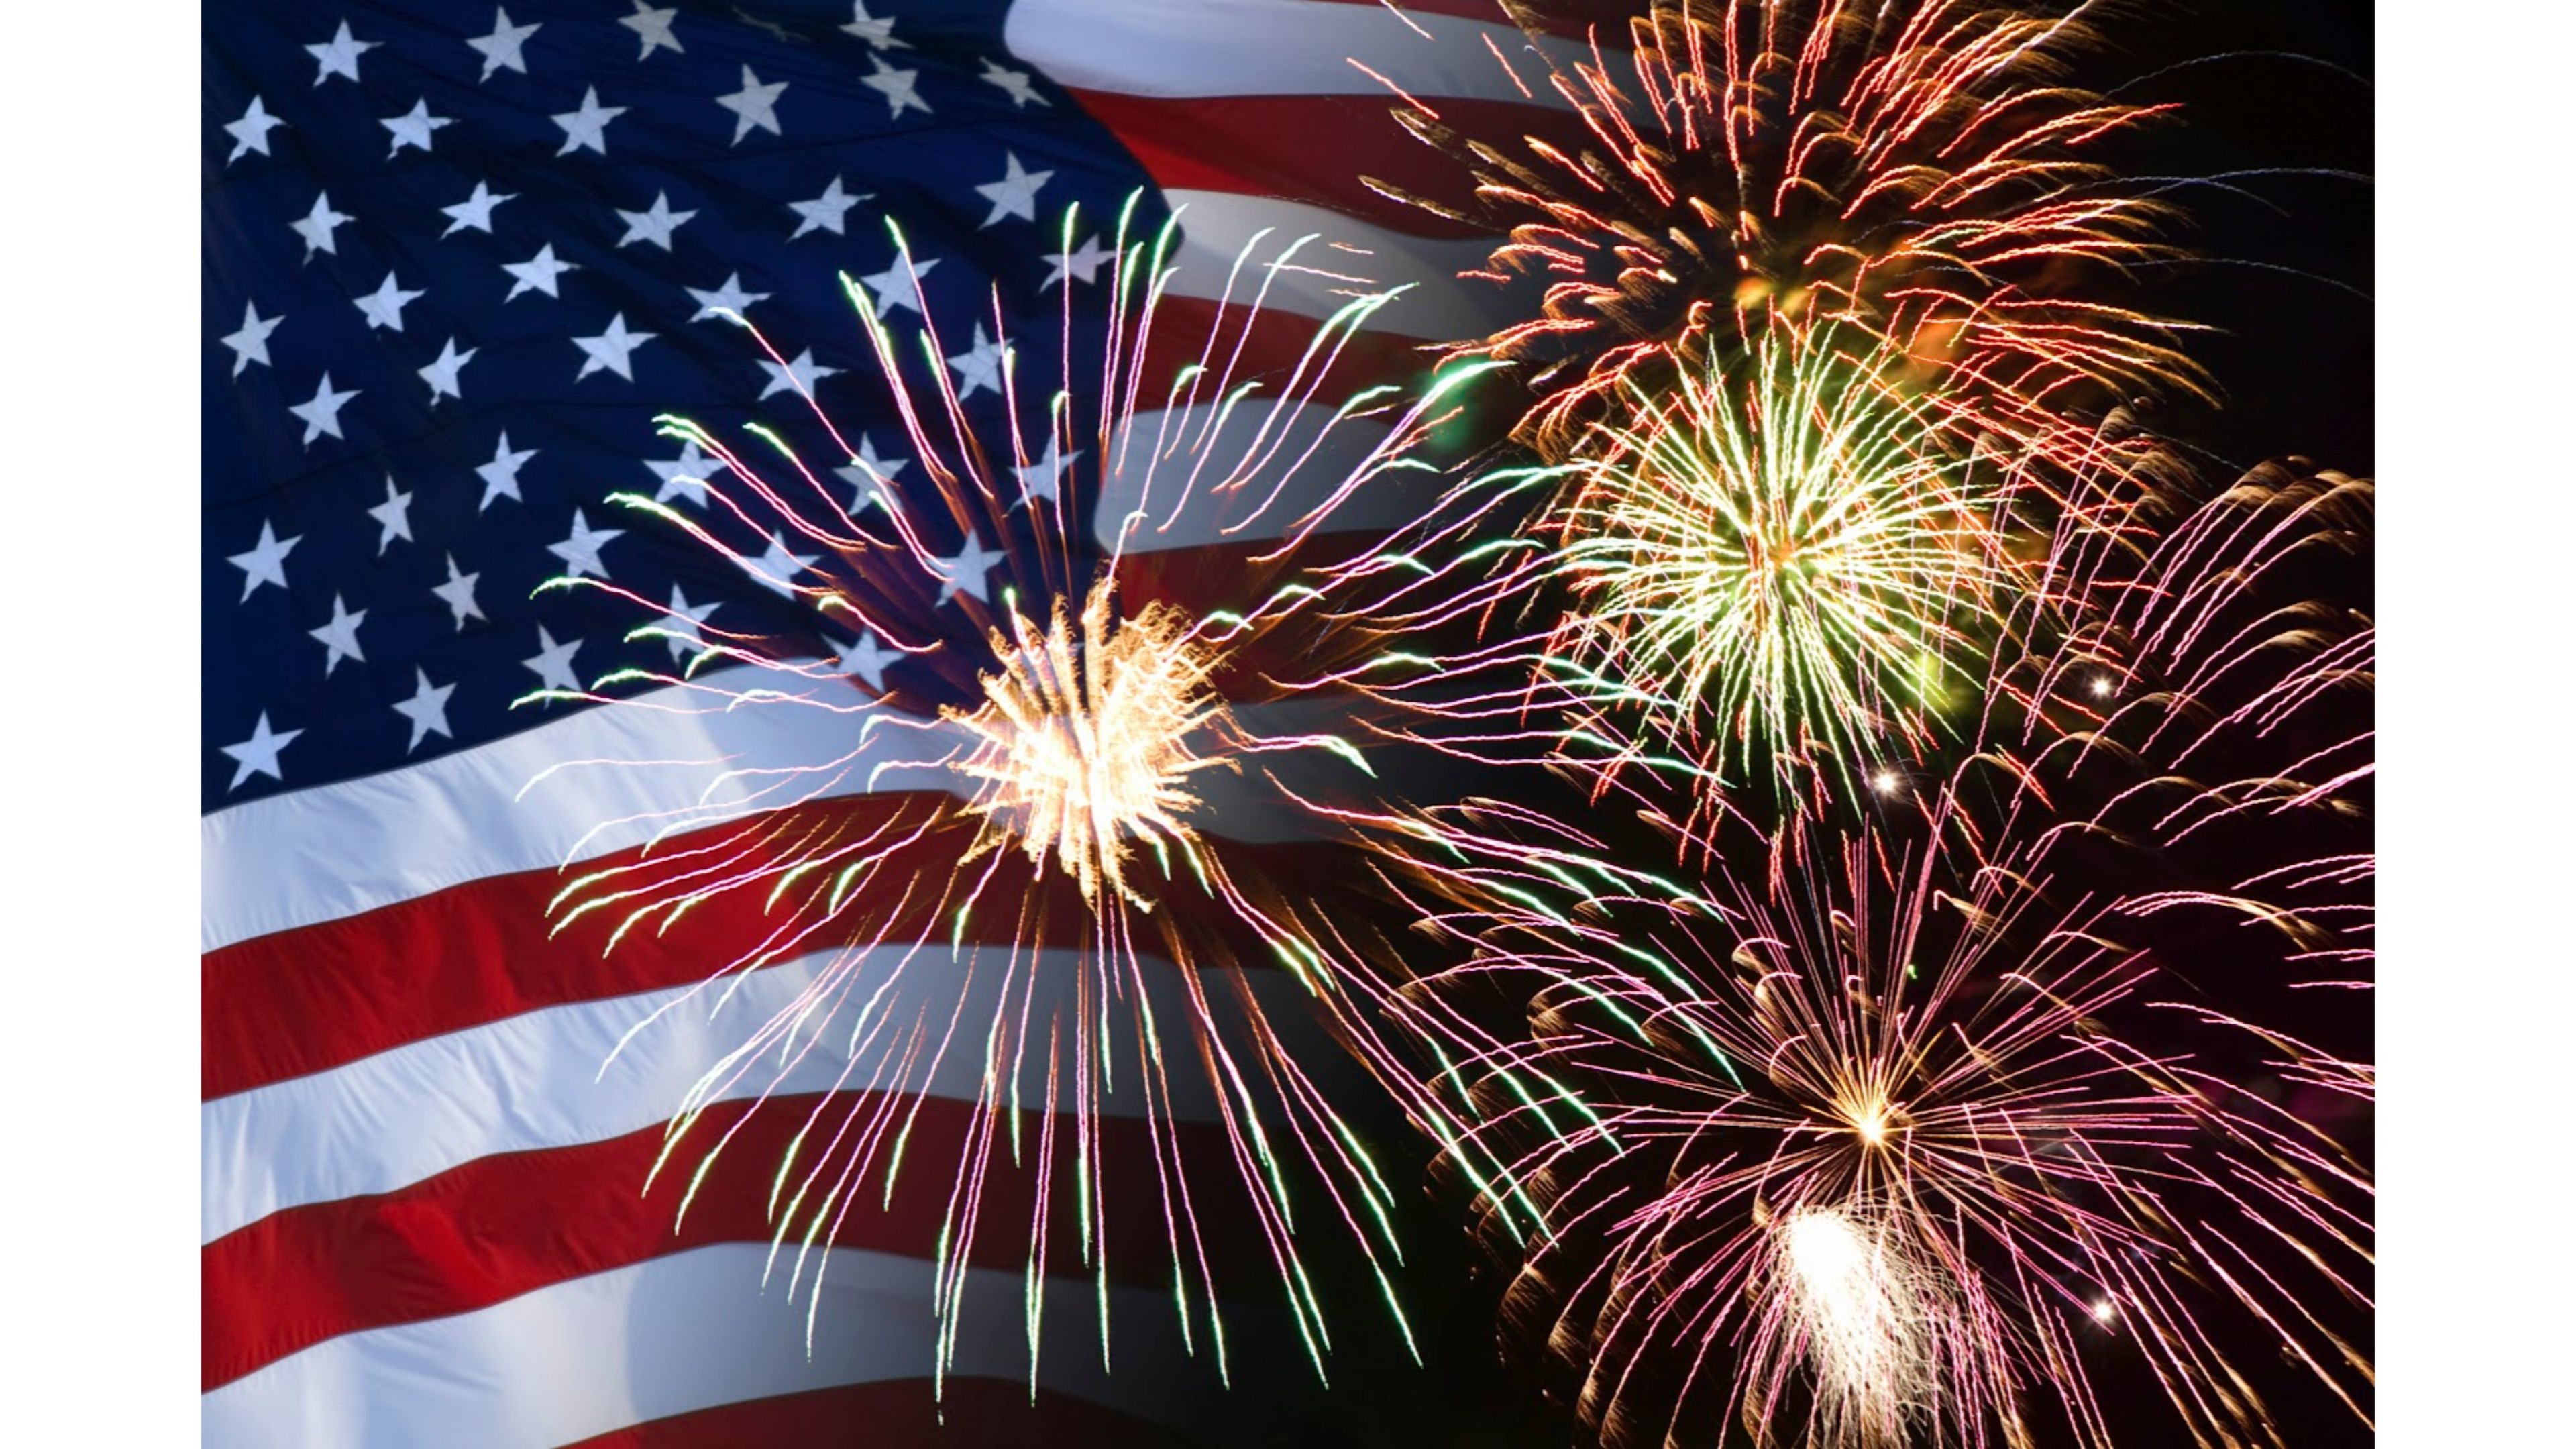 4th Of July Ipad Wallpaper Hd: July 4th Backgrounds ·① WallpaperTag